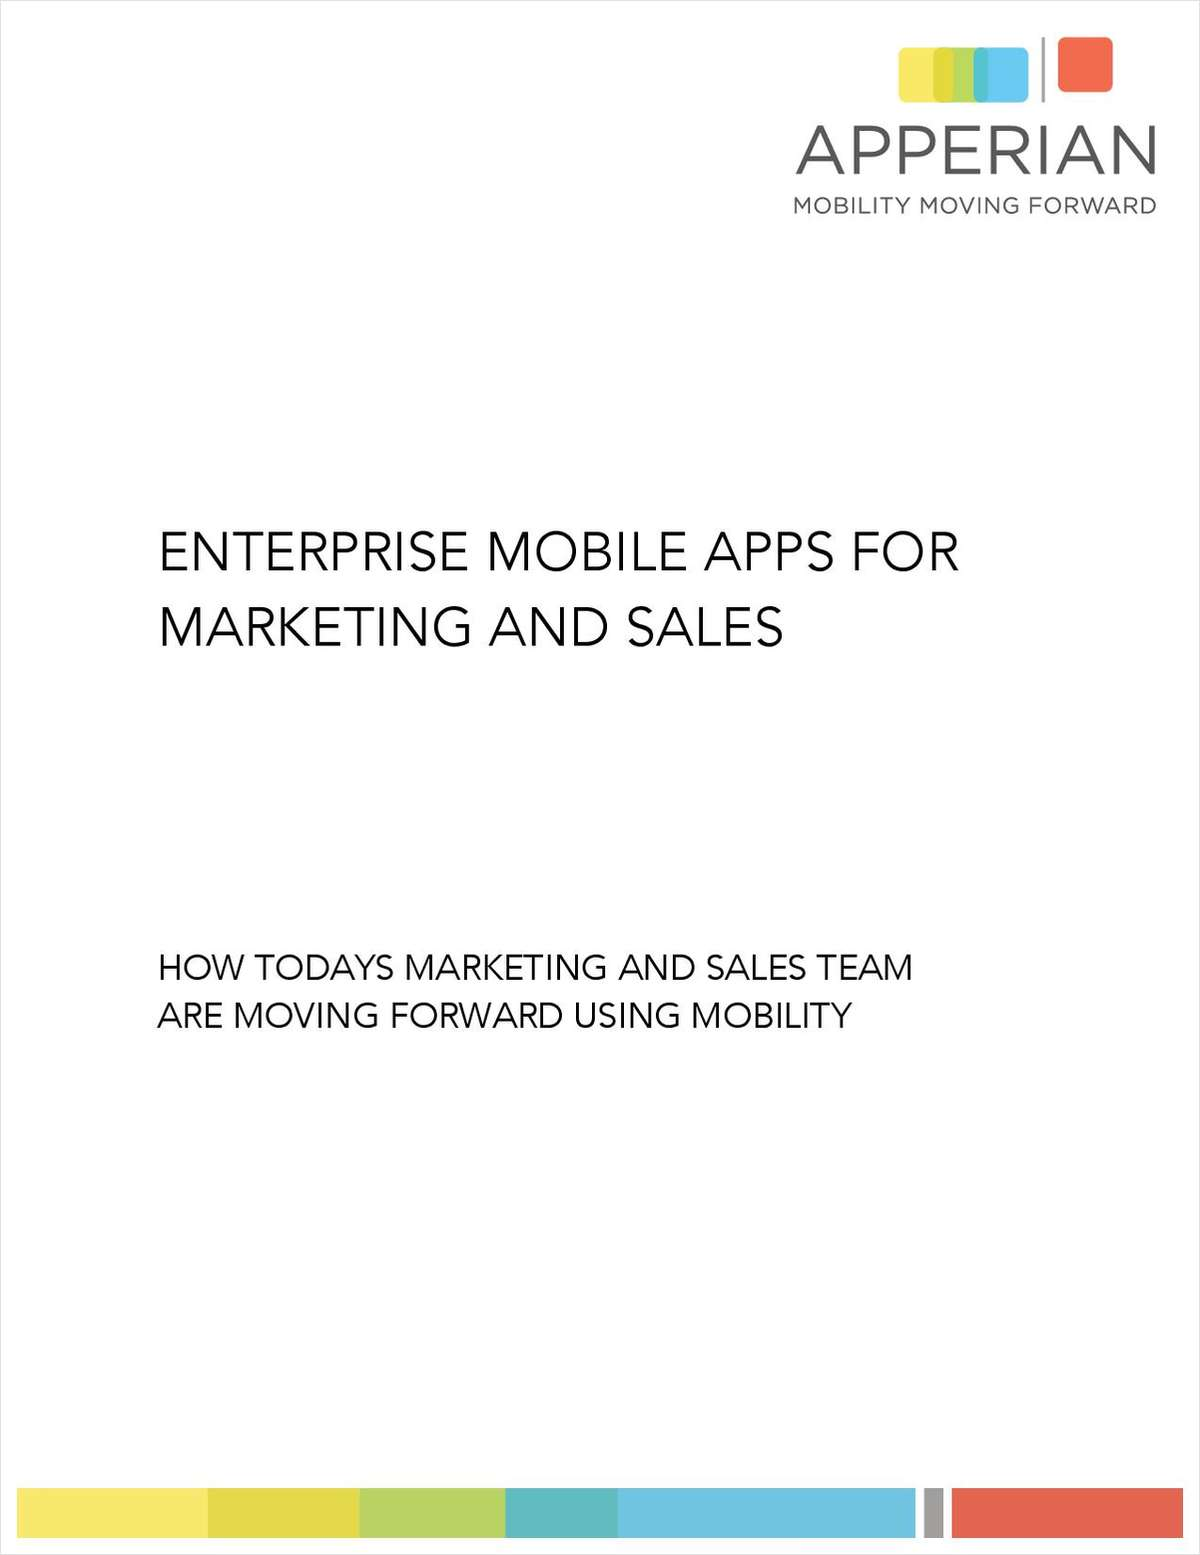 Enterprise Mobile Apps for Marketing and Sales:   How today's sales and marketing teams are moving forward using mobility